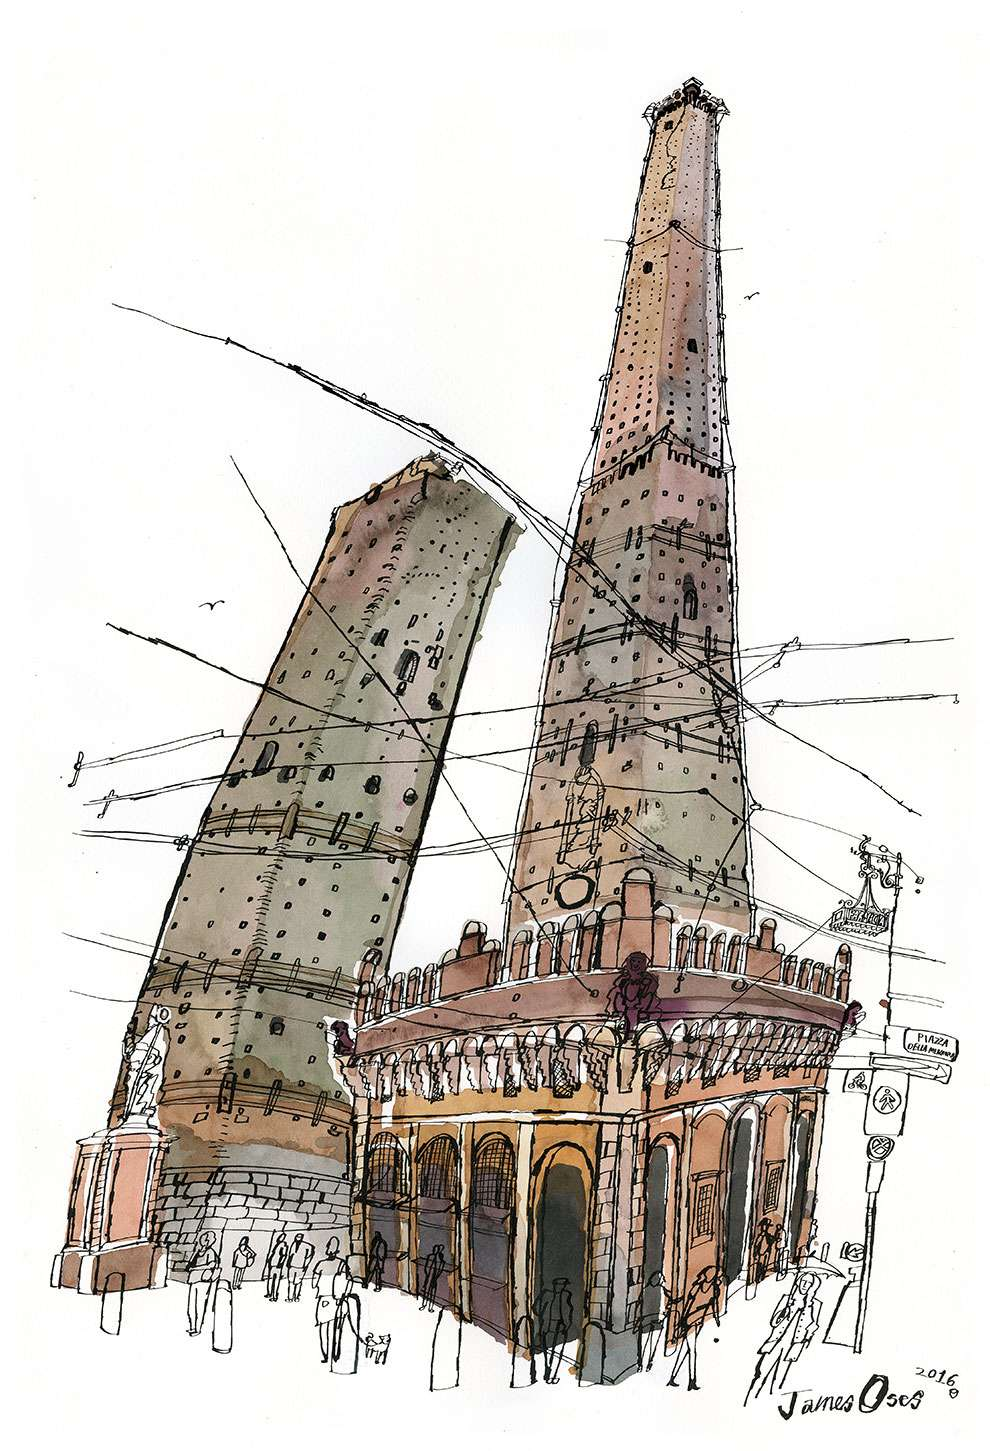 James Oses, Architectural watercolour illustration